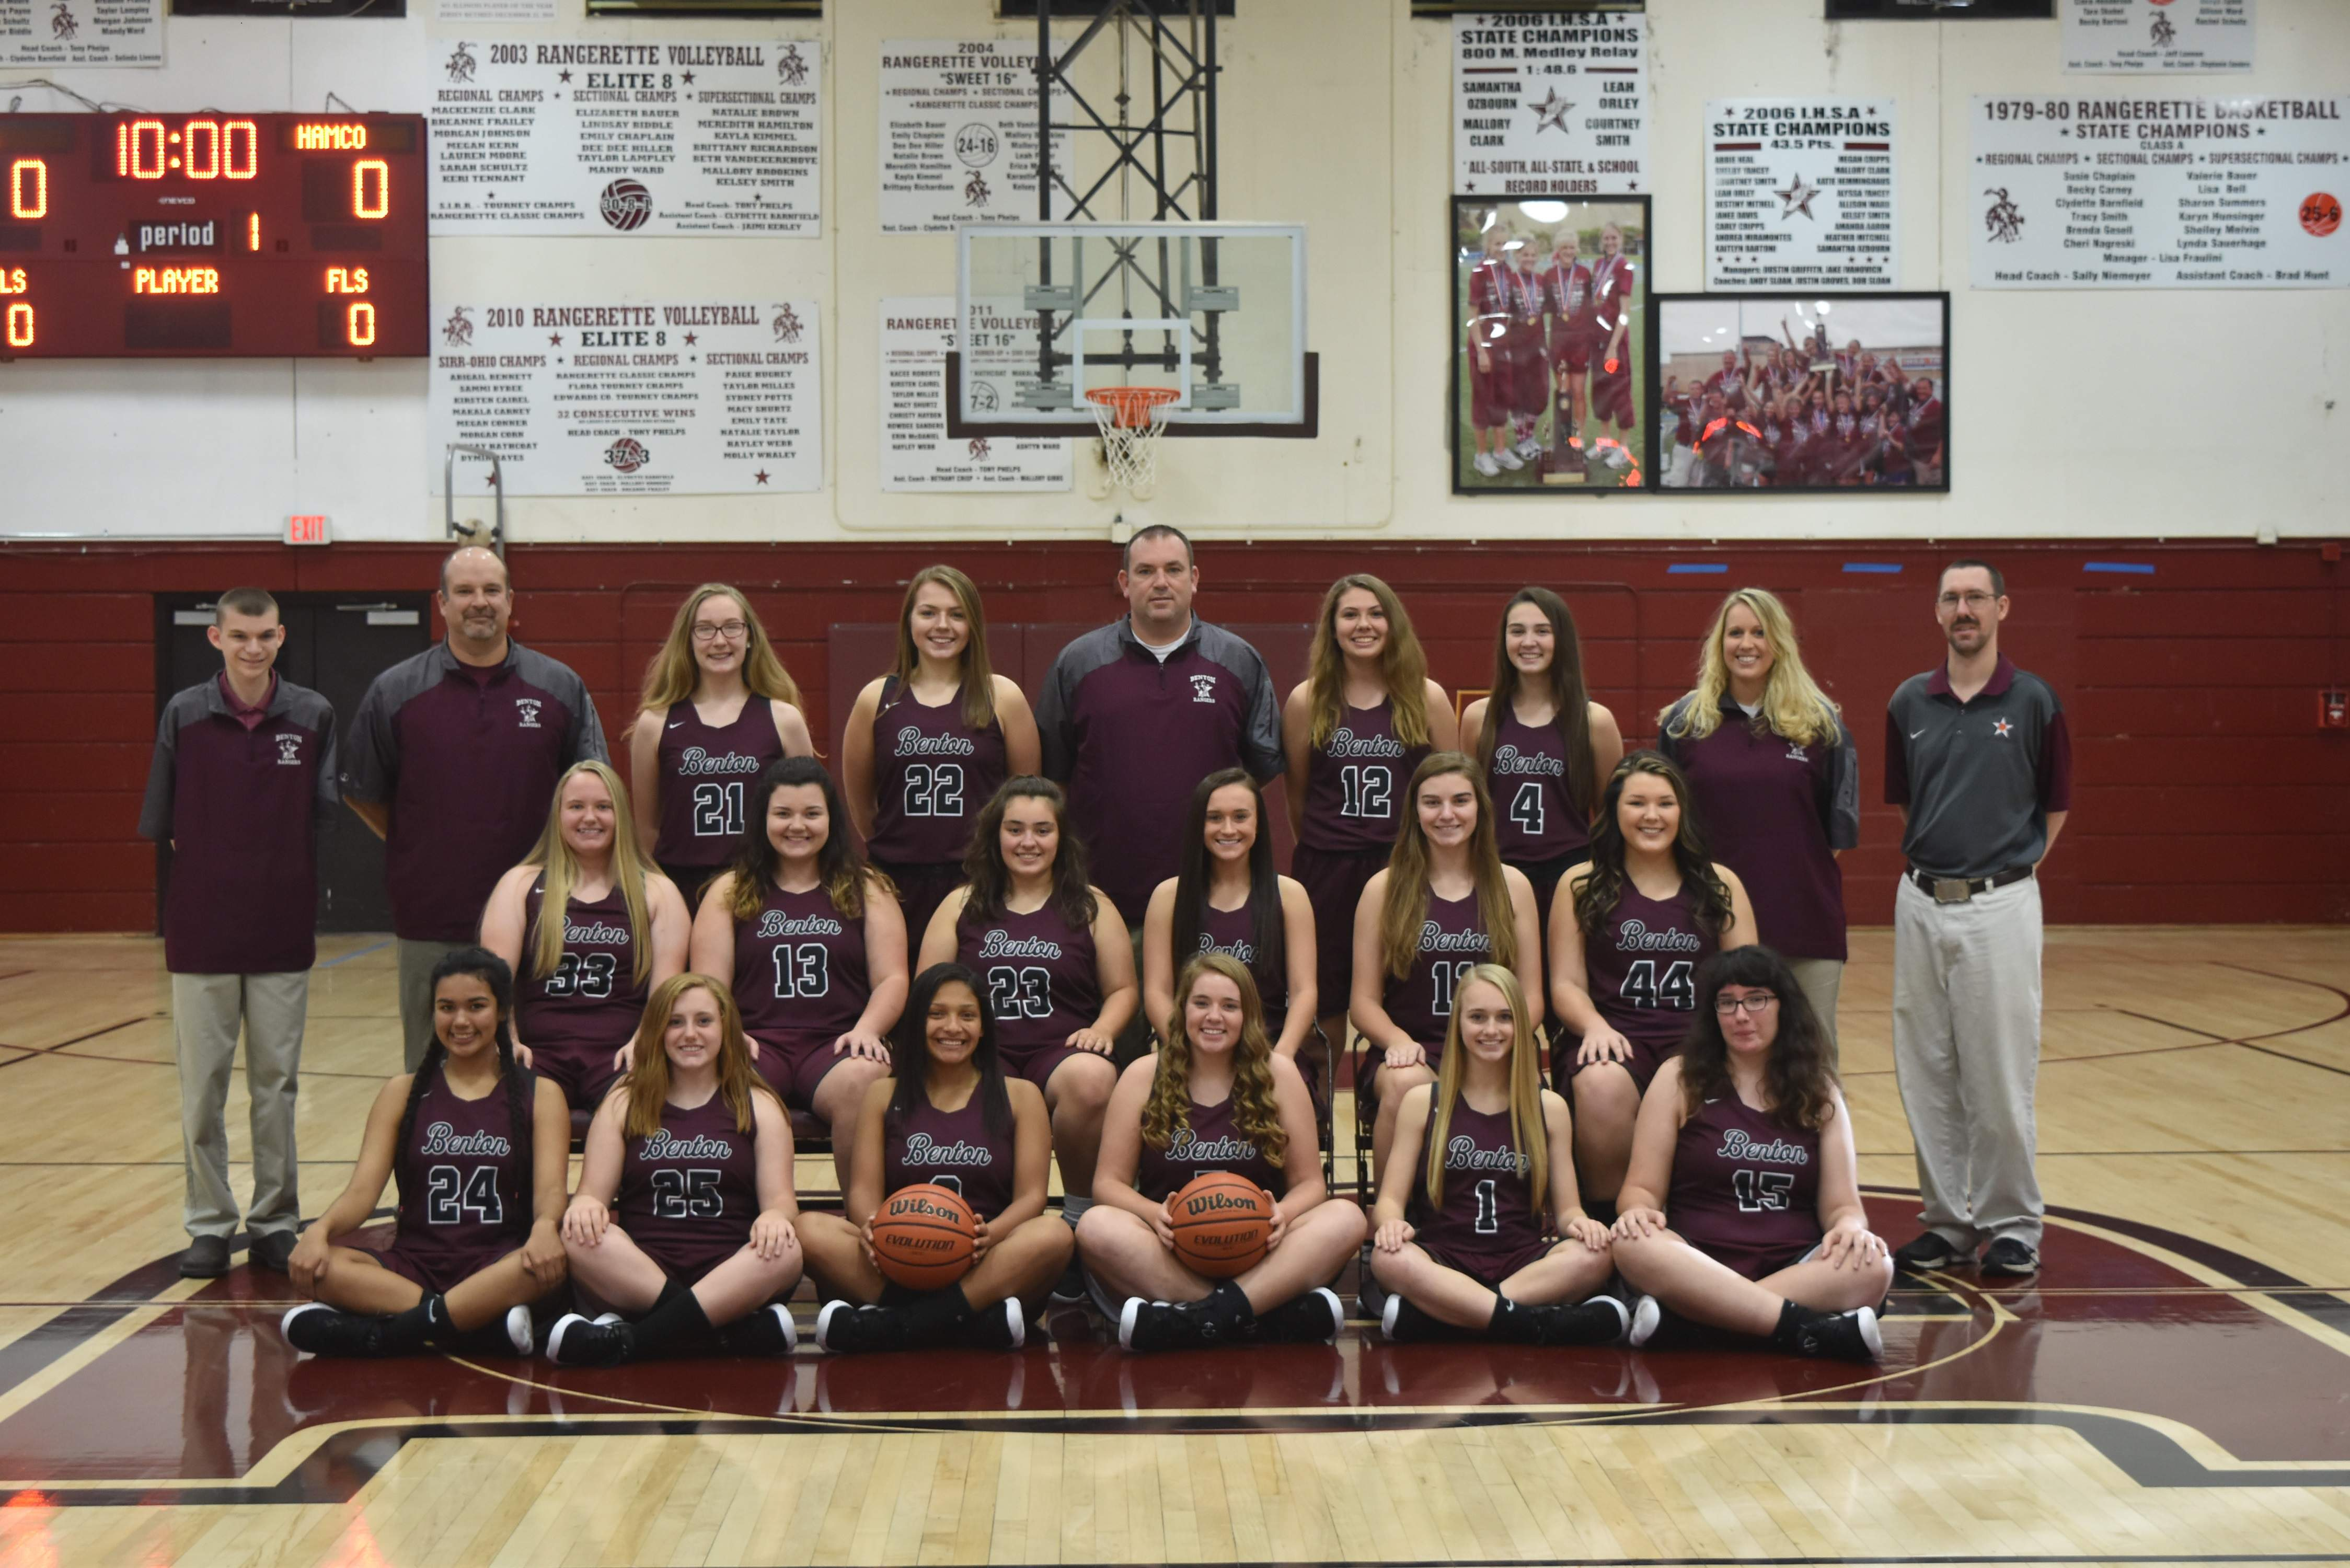 The Benton Rangerettes team, with players Eb Casey; Cailyn Fowlkes; Mady Wallace; Addisyn Miller; Zoe Carlton; Ember Milby; Sesley Tedeschi; Macie Cockrum; Madison Lingle; Payton Thomas; Kelsey Wilcox; Baylie Sawyer; Mary Martinez; Katie Hill; Olivia Wilkey and Kady Johnson.